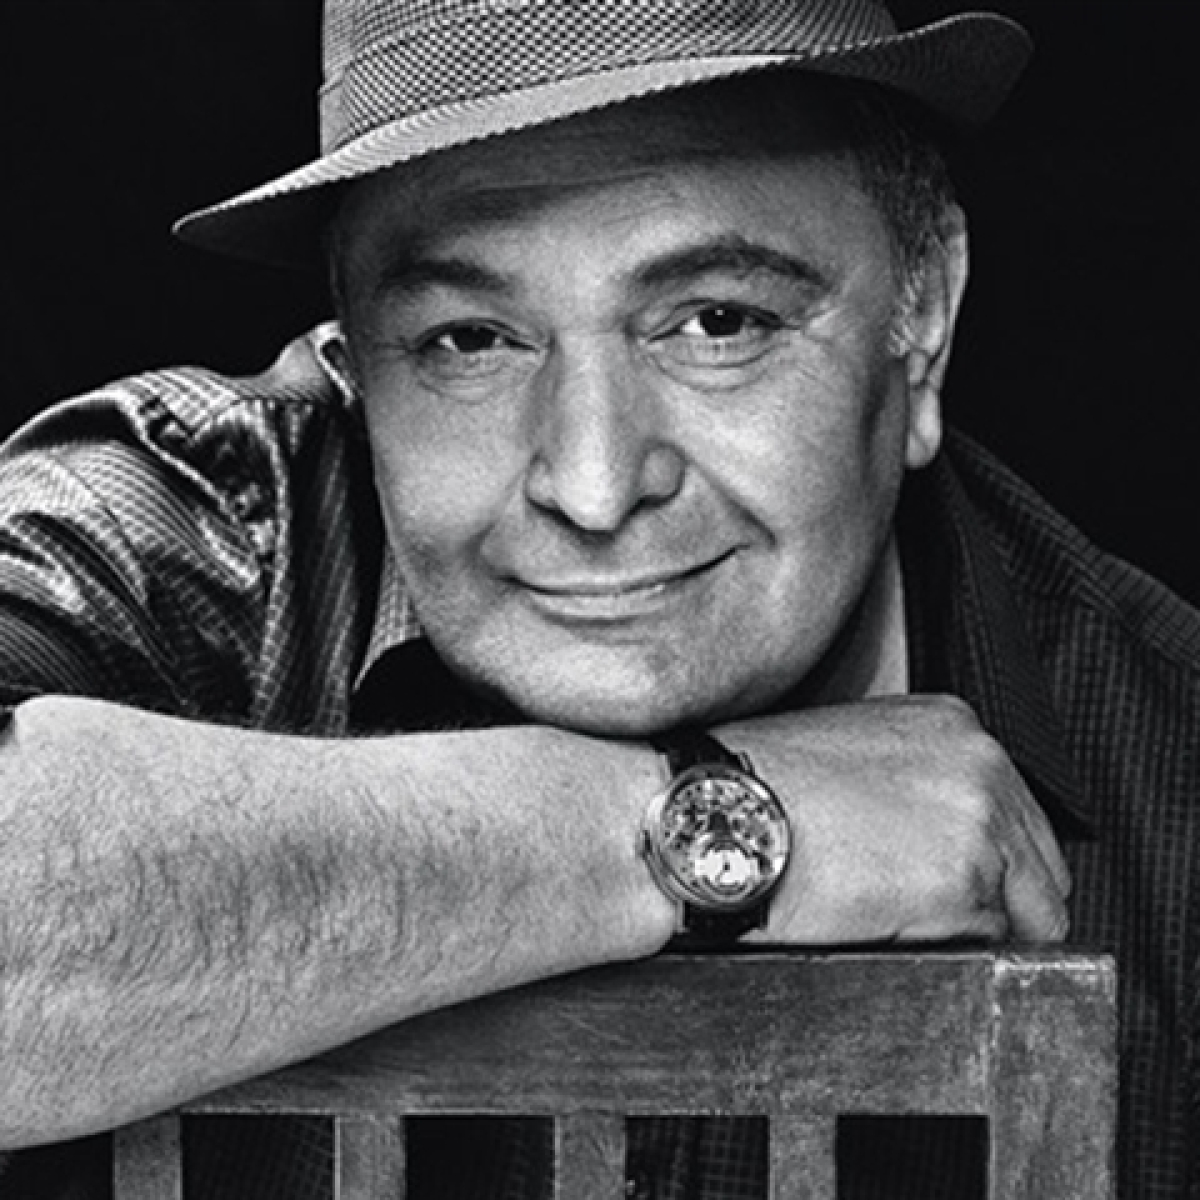 Rishi Kapoor's funeral performed at Chandanwadi crematorium, nation mourns passing off a legend